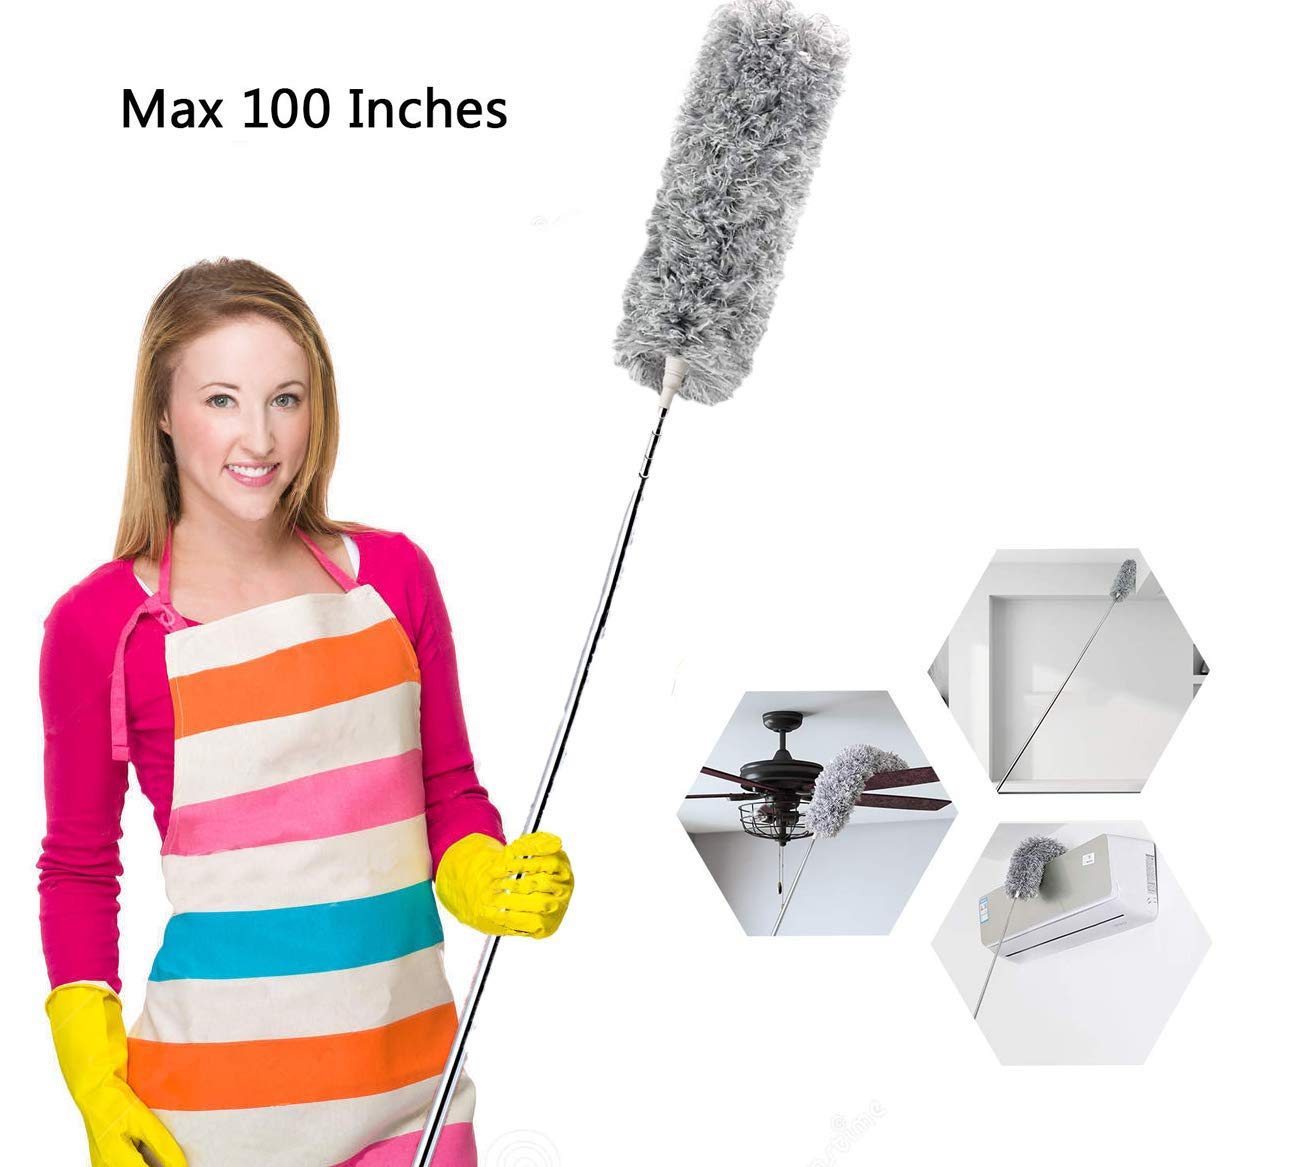 Microfiber Duster for Cleaning with Extension Pole(Stainless Steel), Extra Long 100 inches,with Bendable Head, Detachable, Lint Free Dusters for Cleaning Ceiling Fan, Blinds, Cobwebs, Furniture